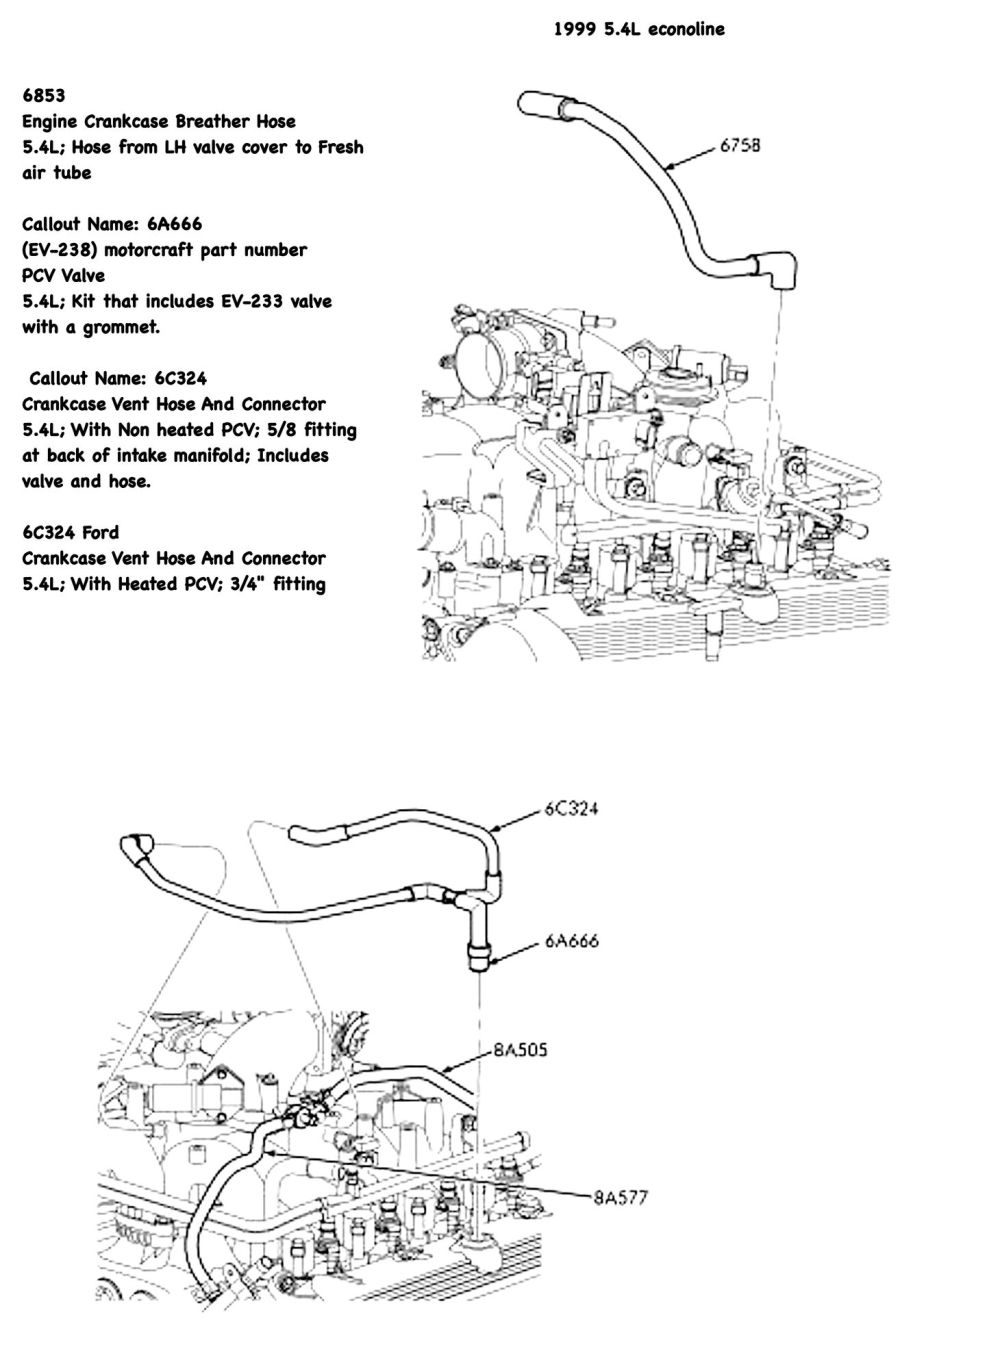 medium resolution of ford triton 5 4l engine diagram wiring diagram ford 5 4 triton engine diagram